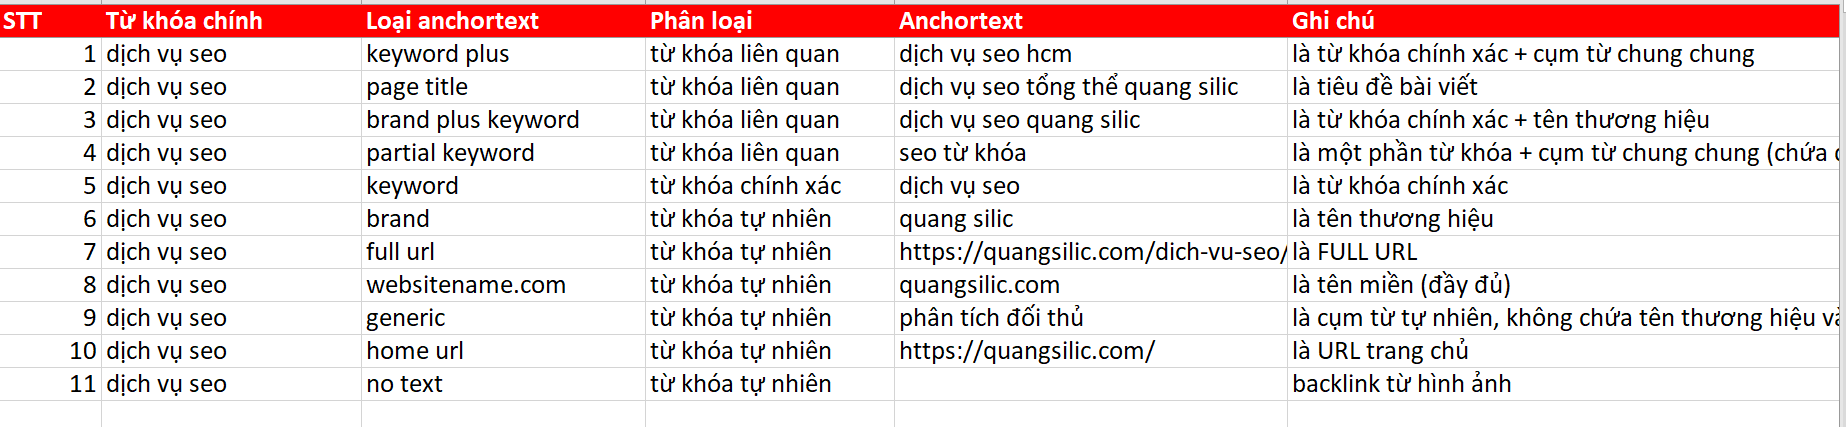 KINH NGHIỆM XÂY DỰNG LINK BUILDING 2020 9